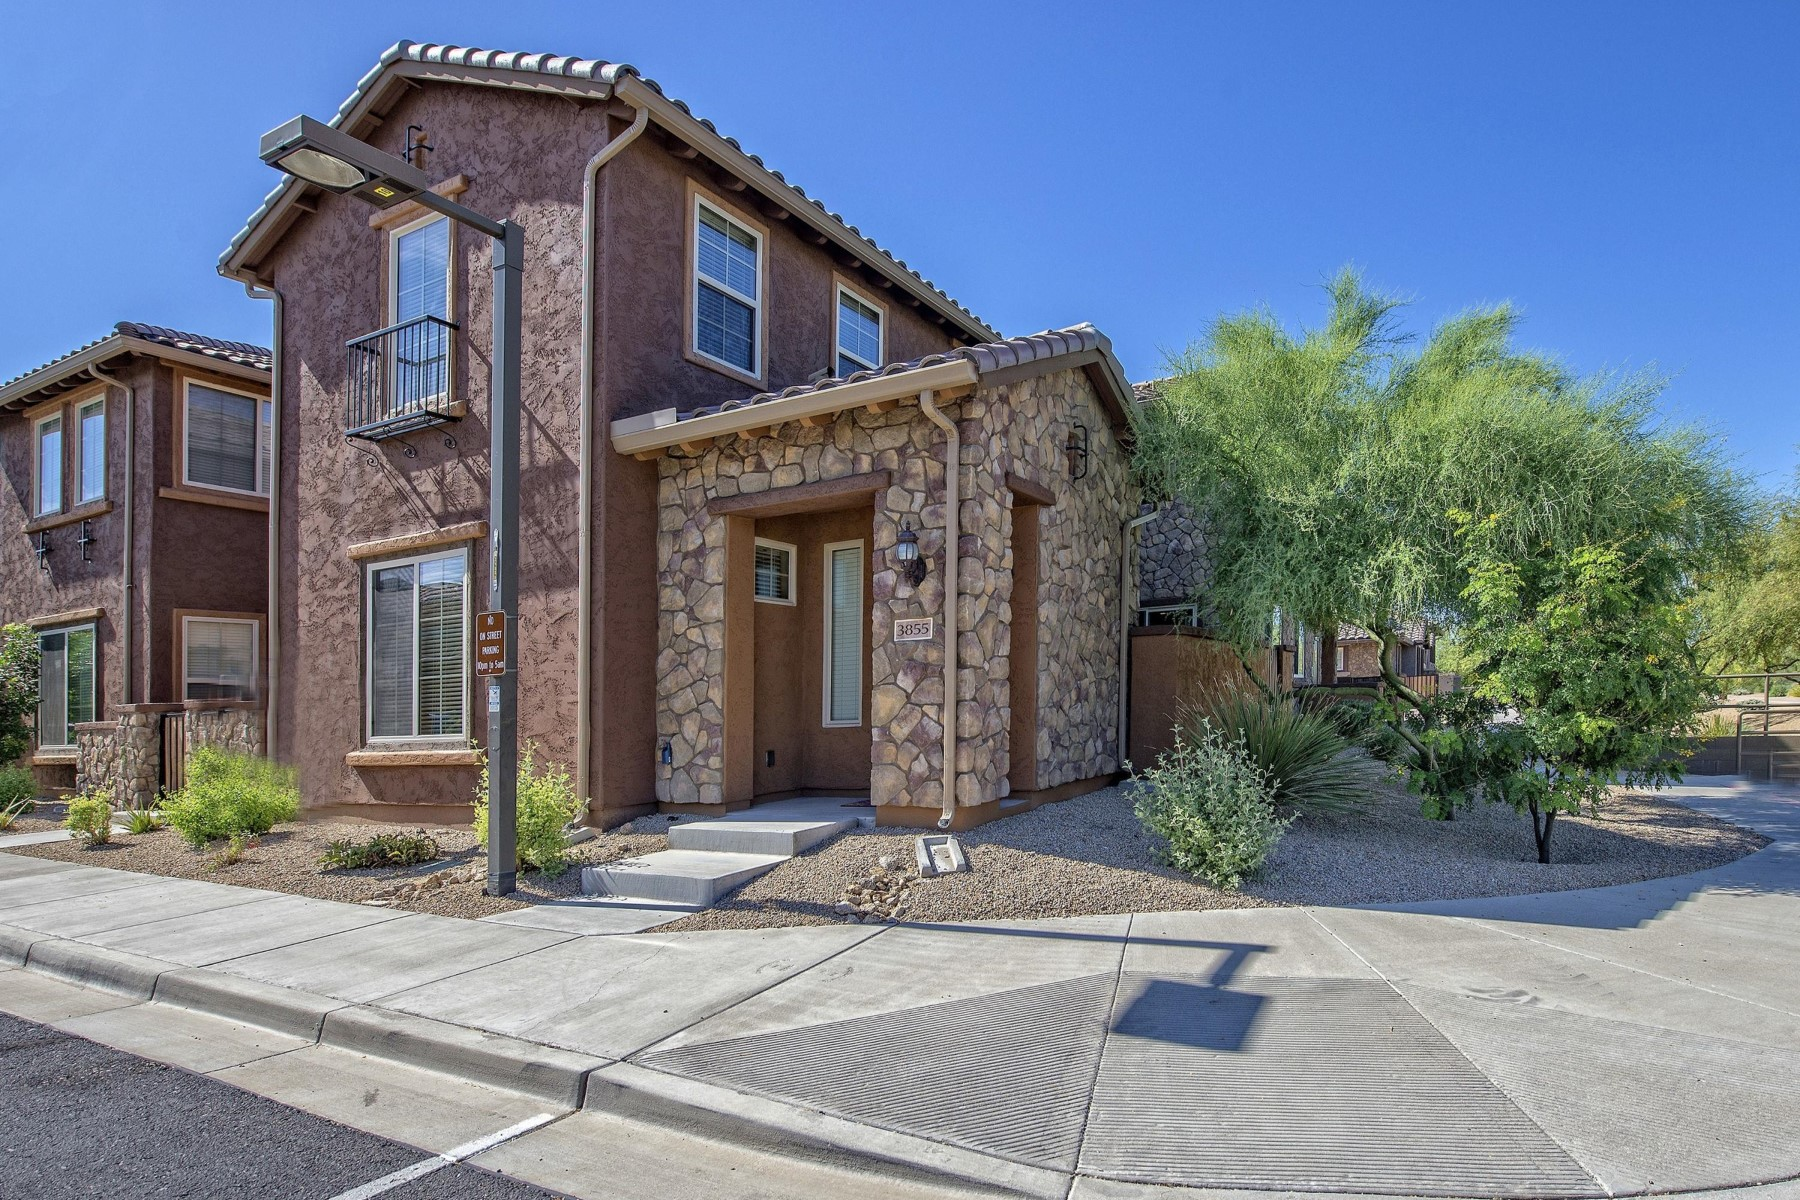 Townhouse for Sale at Exquisite townhouse in Fireside at Desert Ridge 3855 E CAT BALUE DR E Phoenix, Arizona, 85050 United States